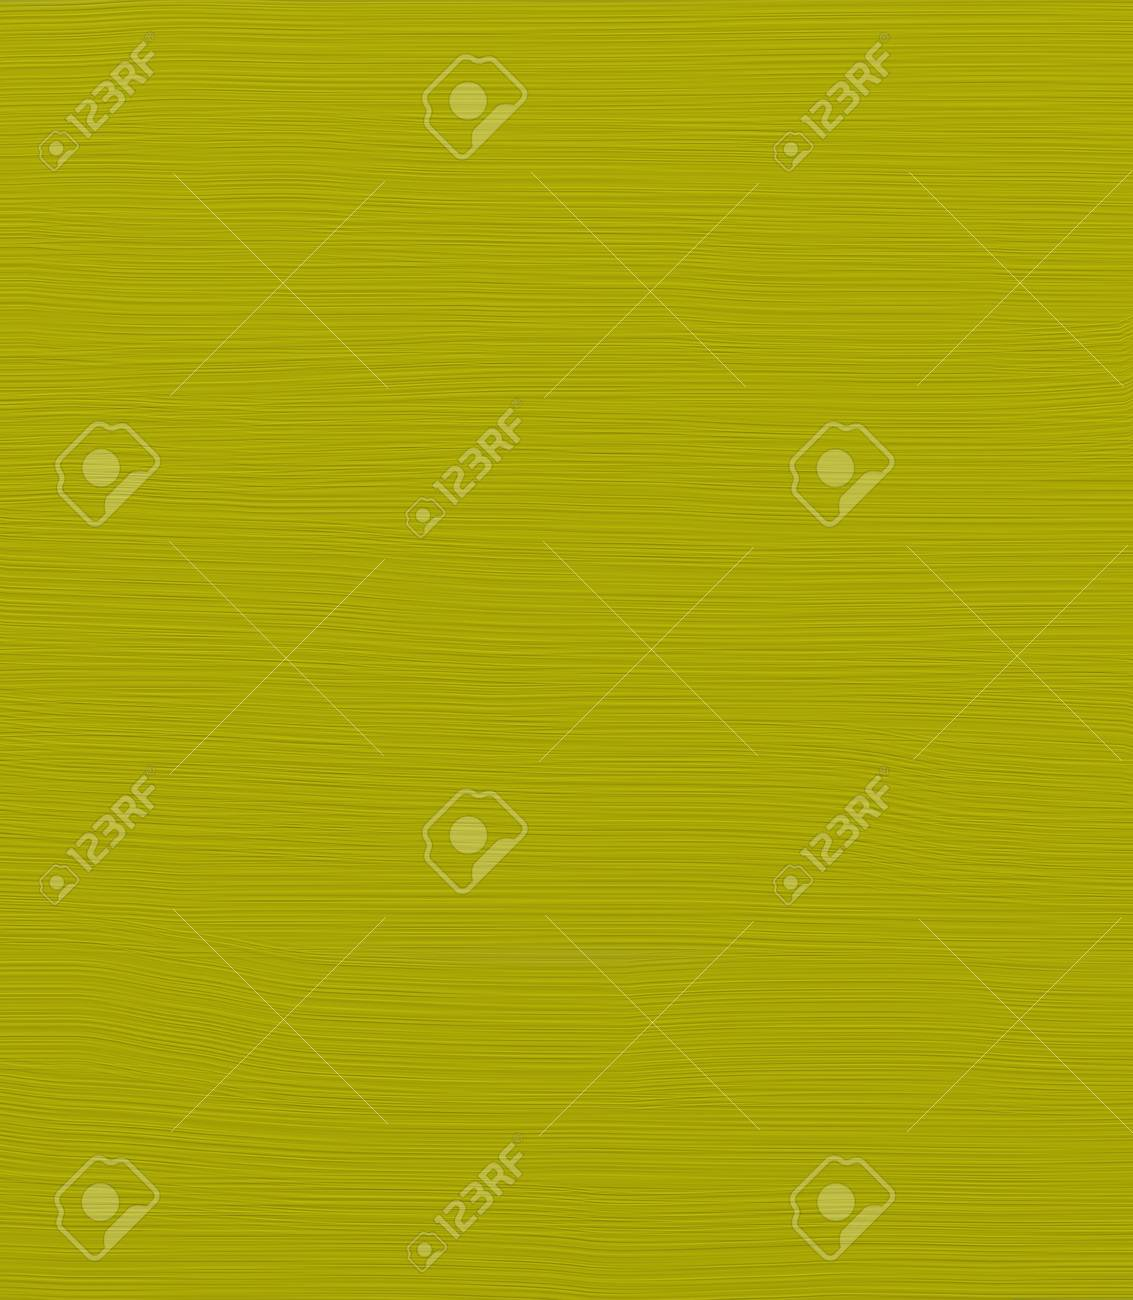 Green Lime Abstract Background Stock Photo - 14294987